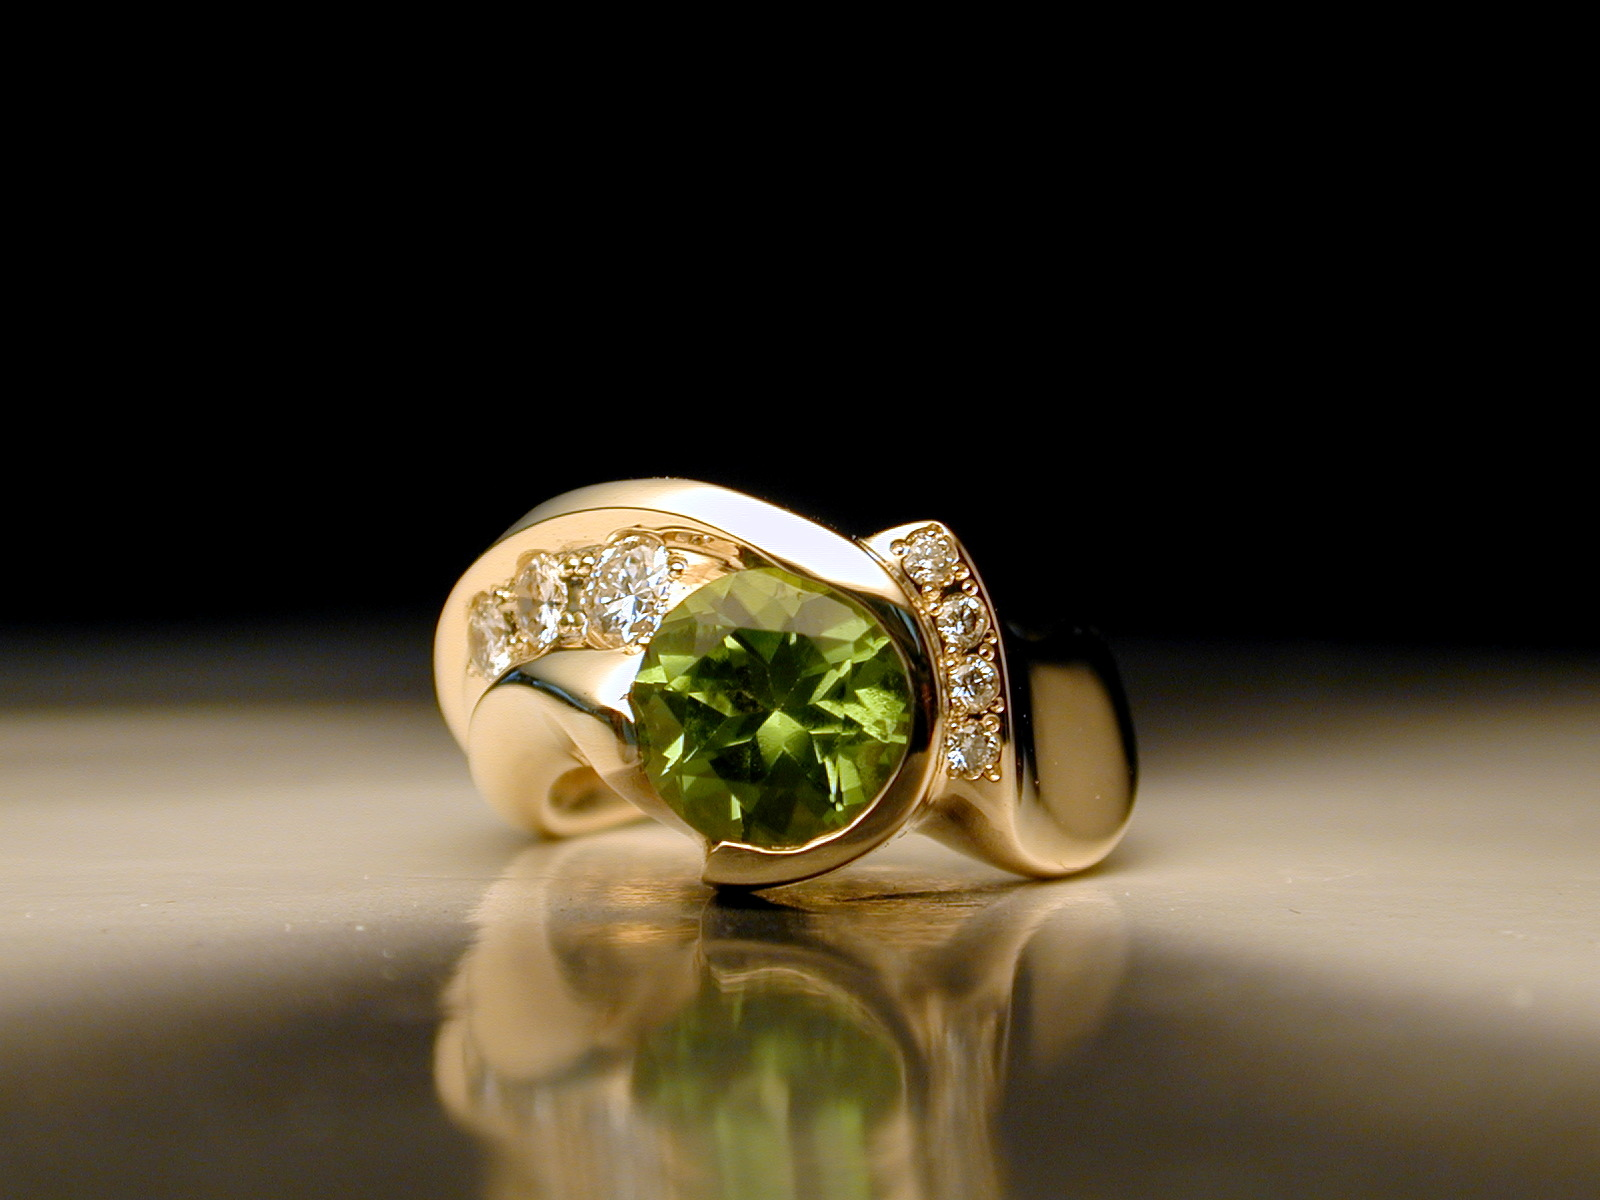 gold, Wedding, Ring, Band, Engagement, Diamonds, Peridot, Jim dailing - portland oregon